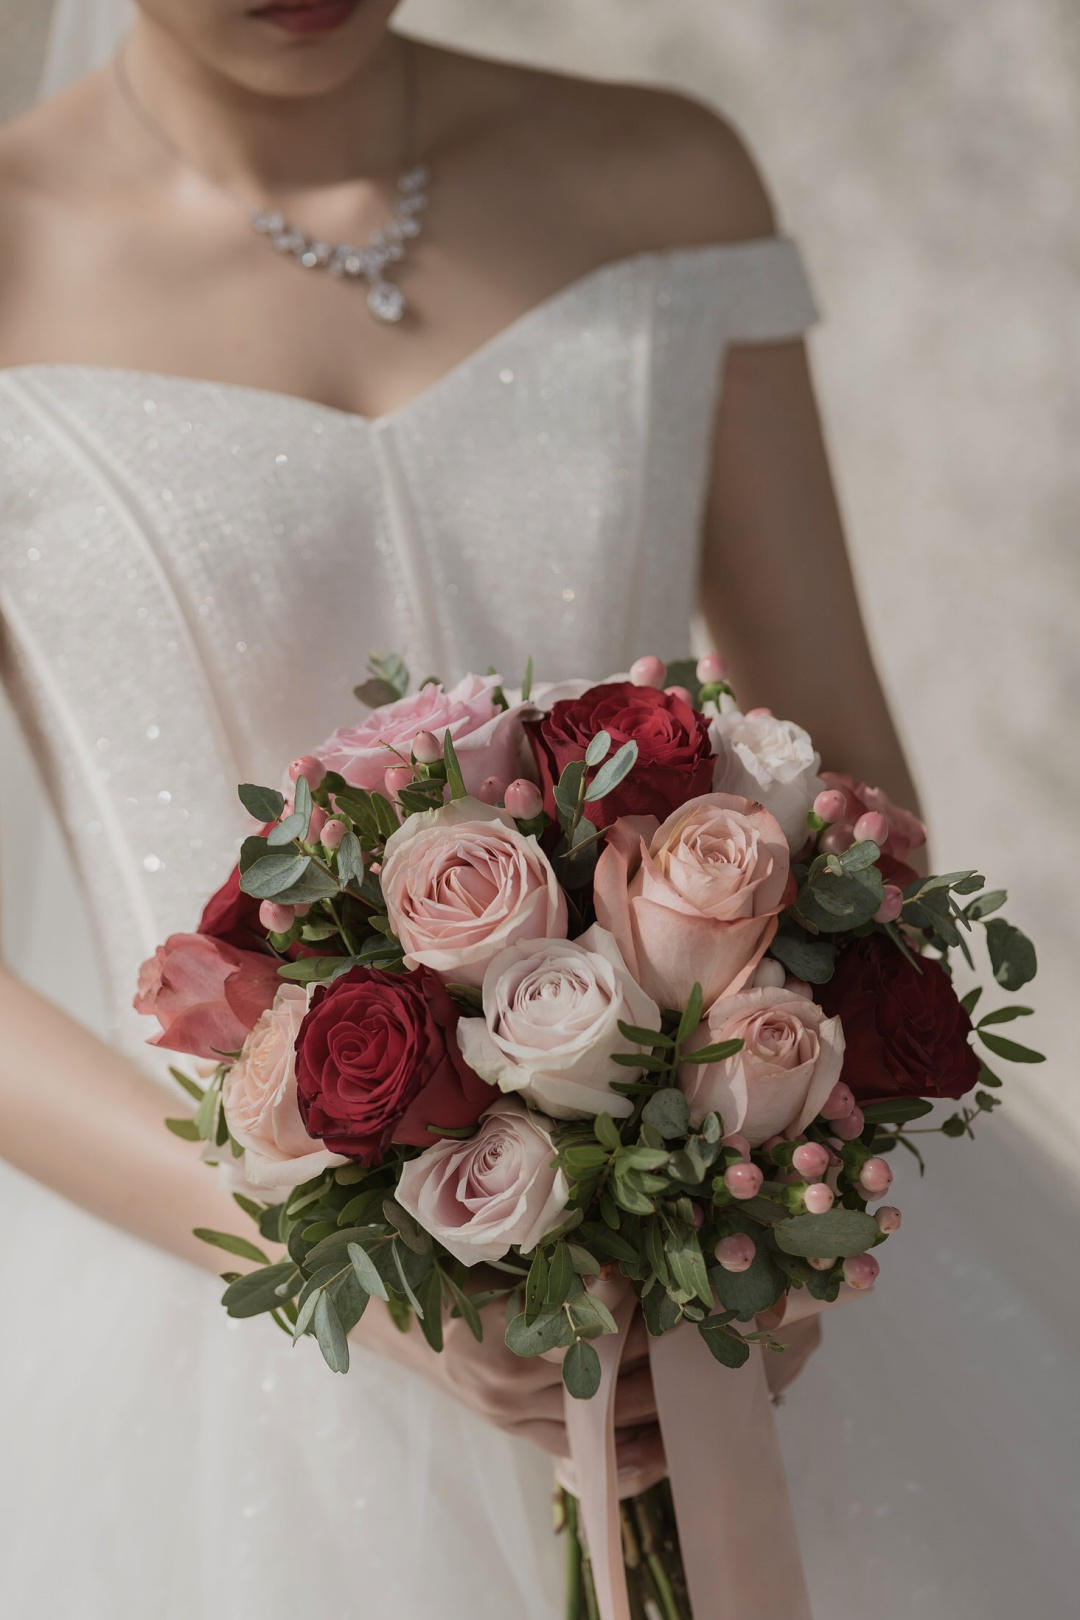 Bridal Bouquet | O'hara Weddings | joanne-khoo.com